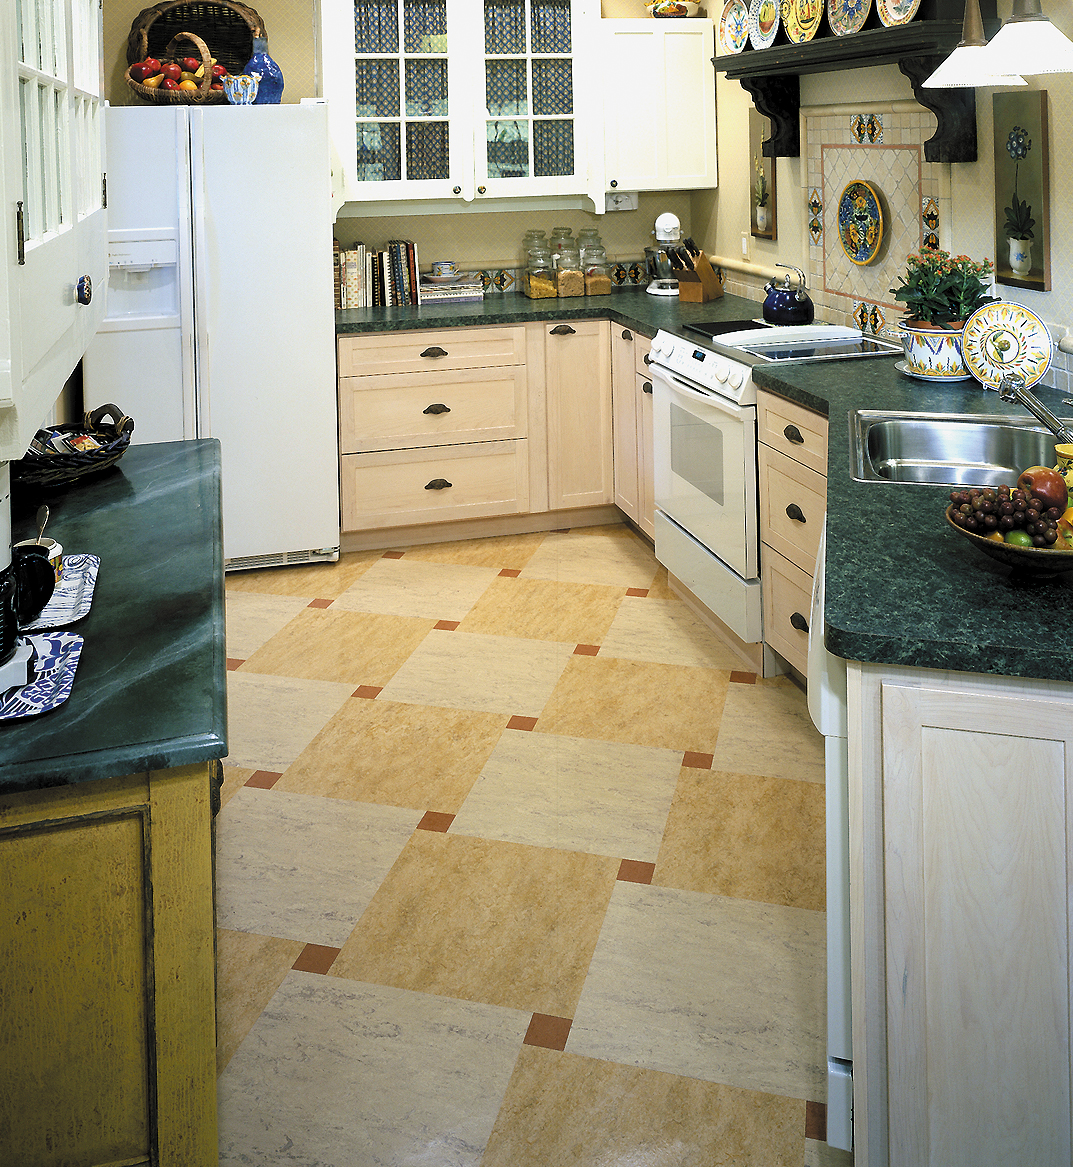 Painting Linoleum Kitchen Floor Vintage Linoleum Flooring All About Flooring Designs